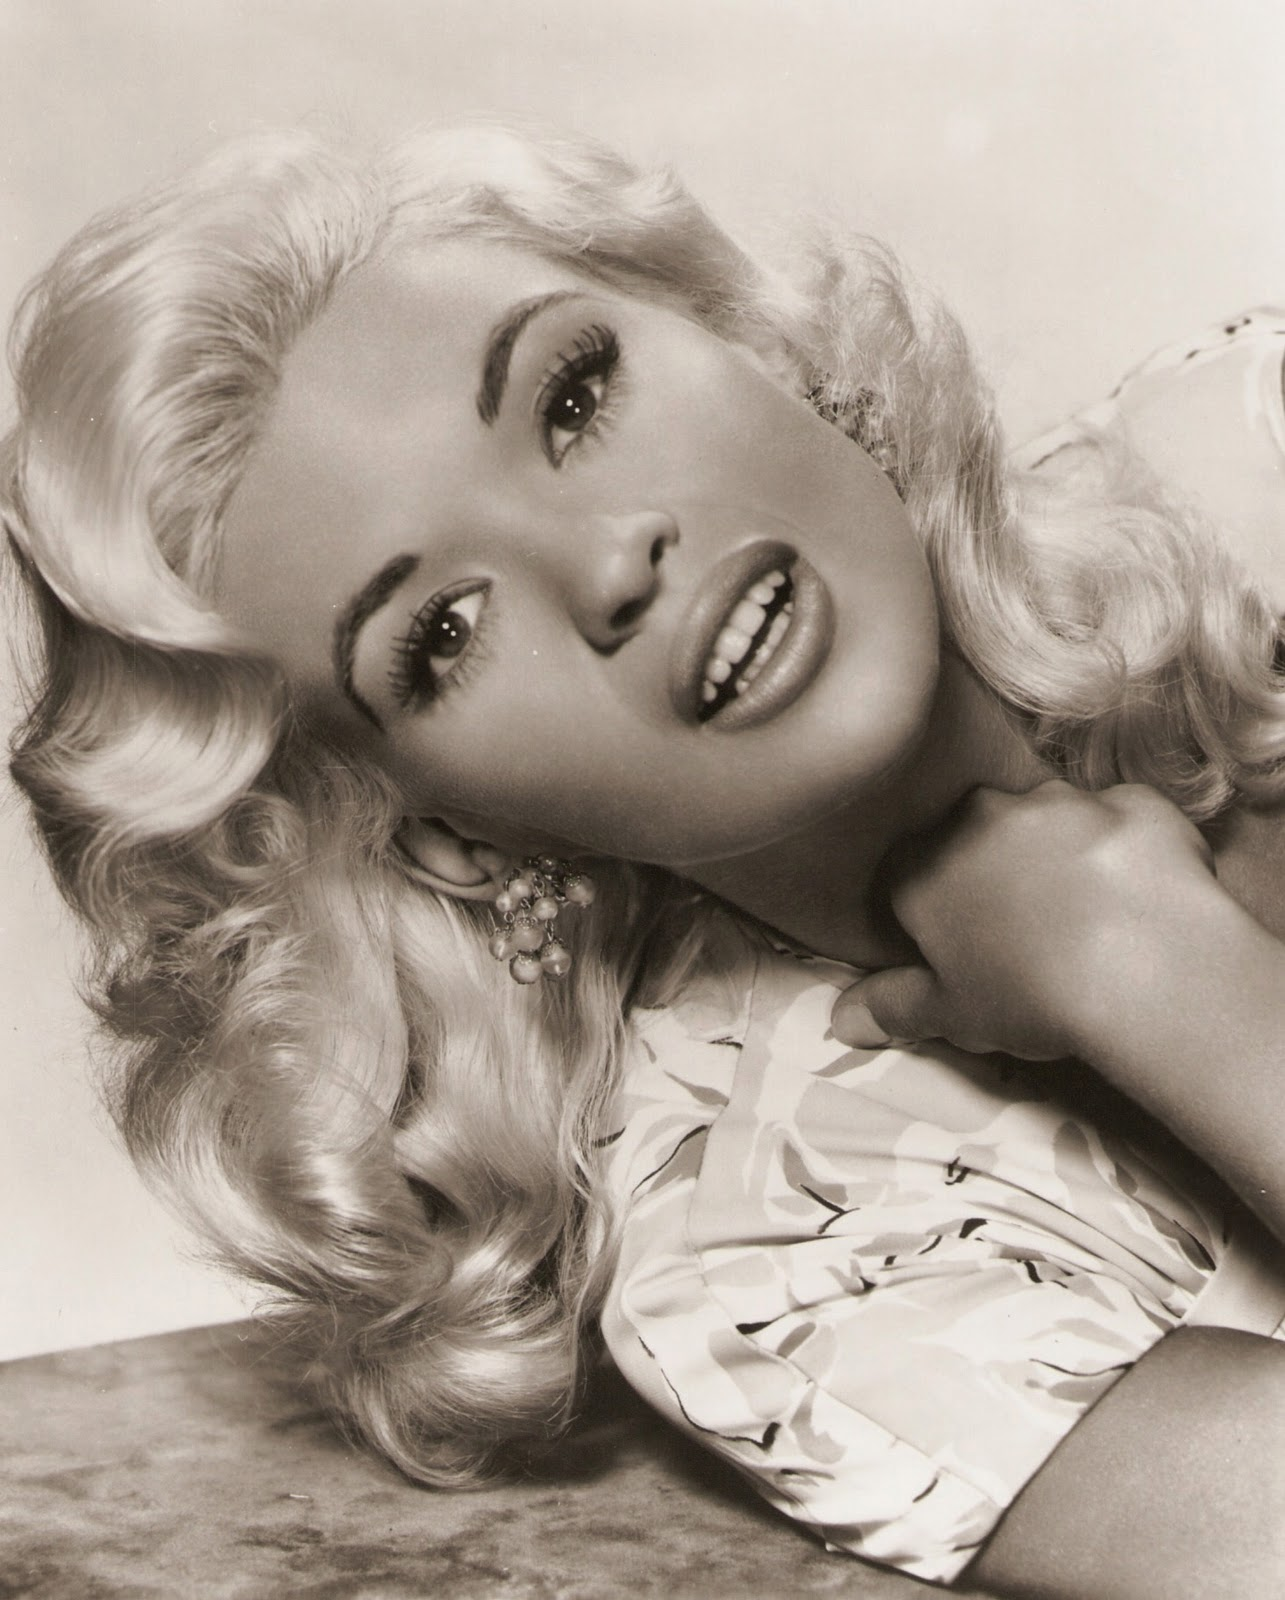 Dazzling divas photo portret the sexy jayne mansfield part 2 for How old was jayne mansfield when she died